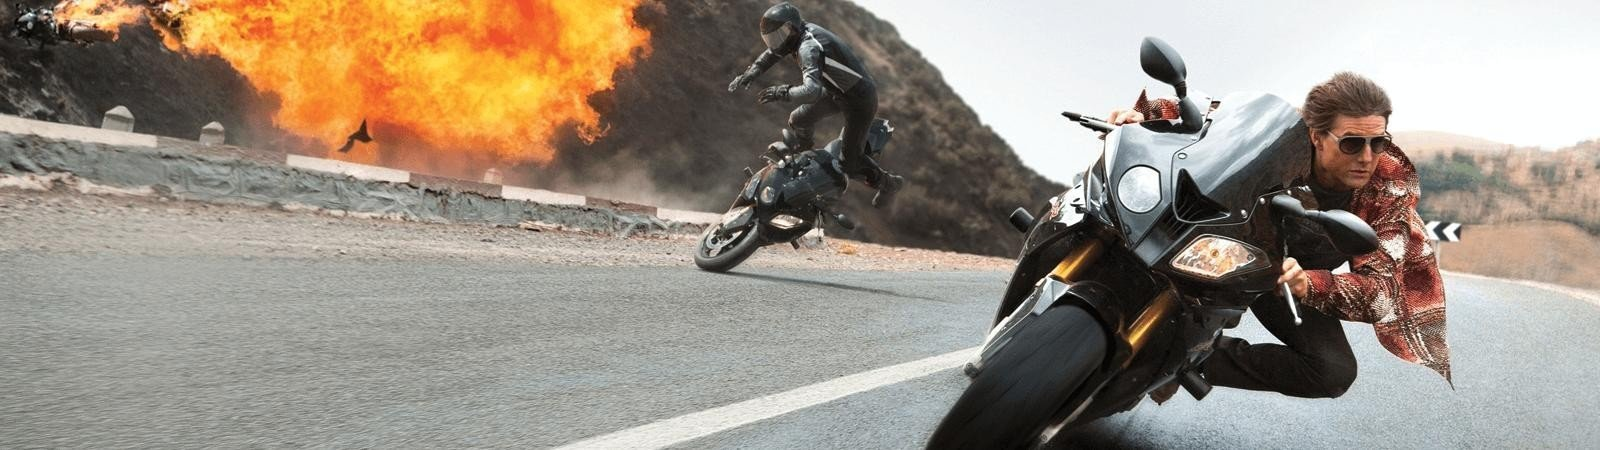 Photo du film : Mission : Impossible, Rogue Nation